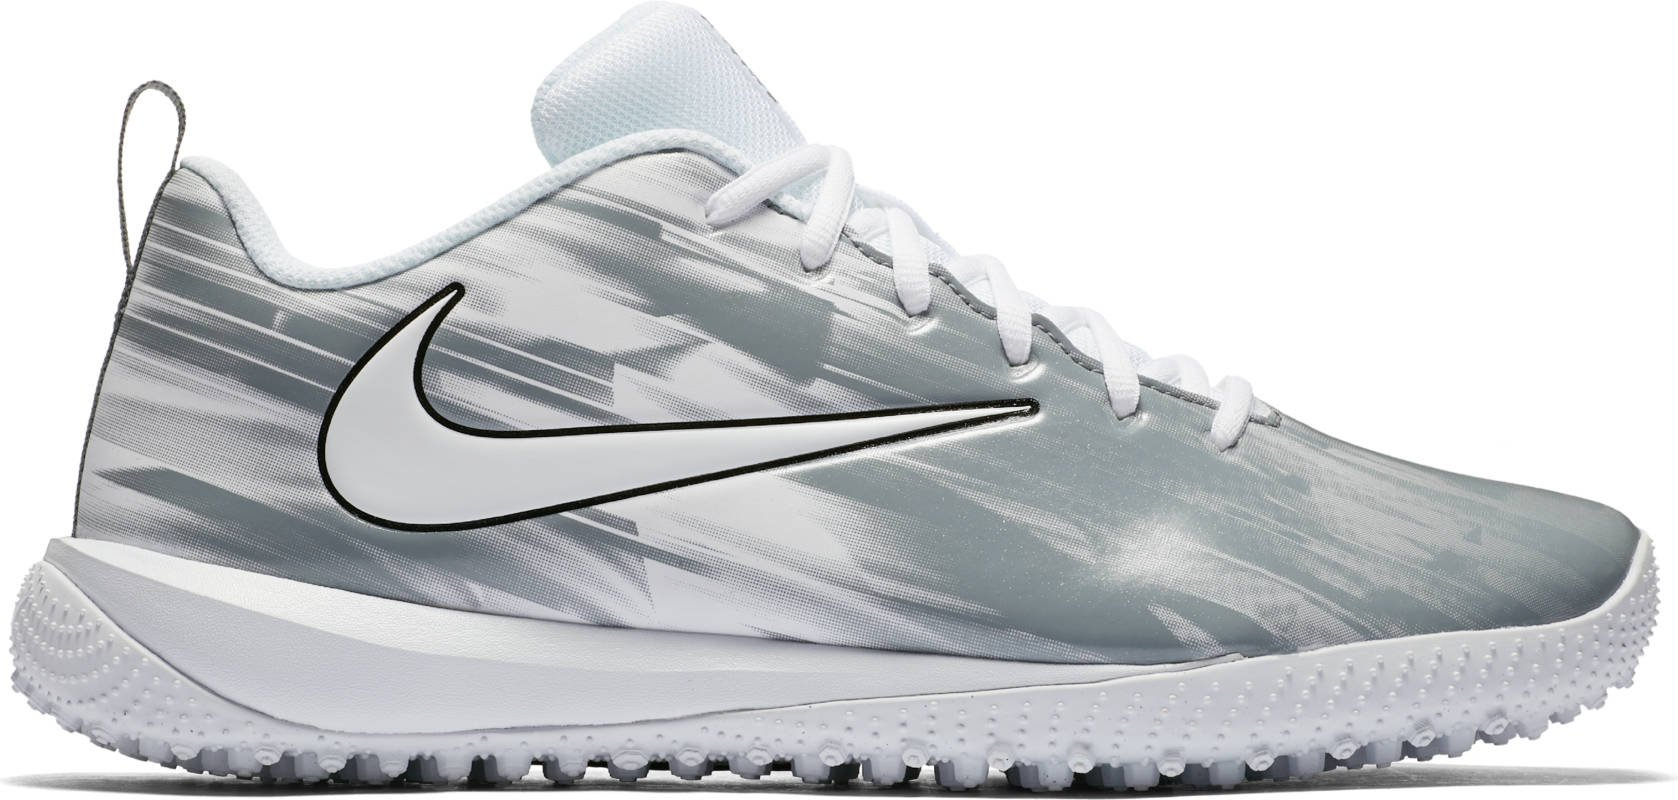 NIKE Men's Vapor Varsity Turf Lacrosse Cleats (9, White/Grey)